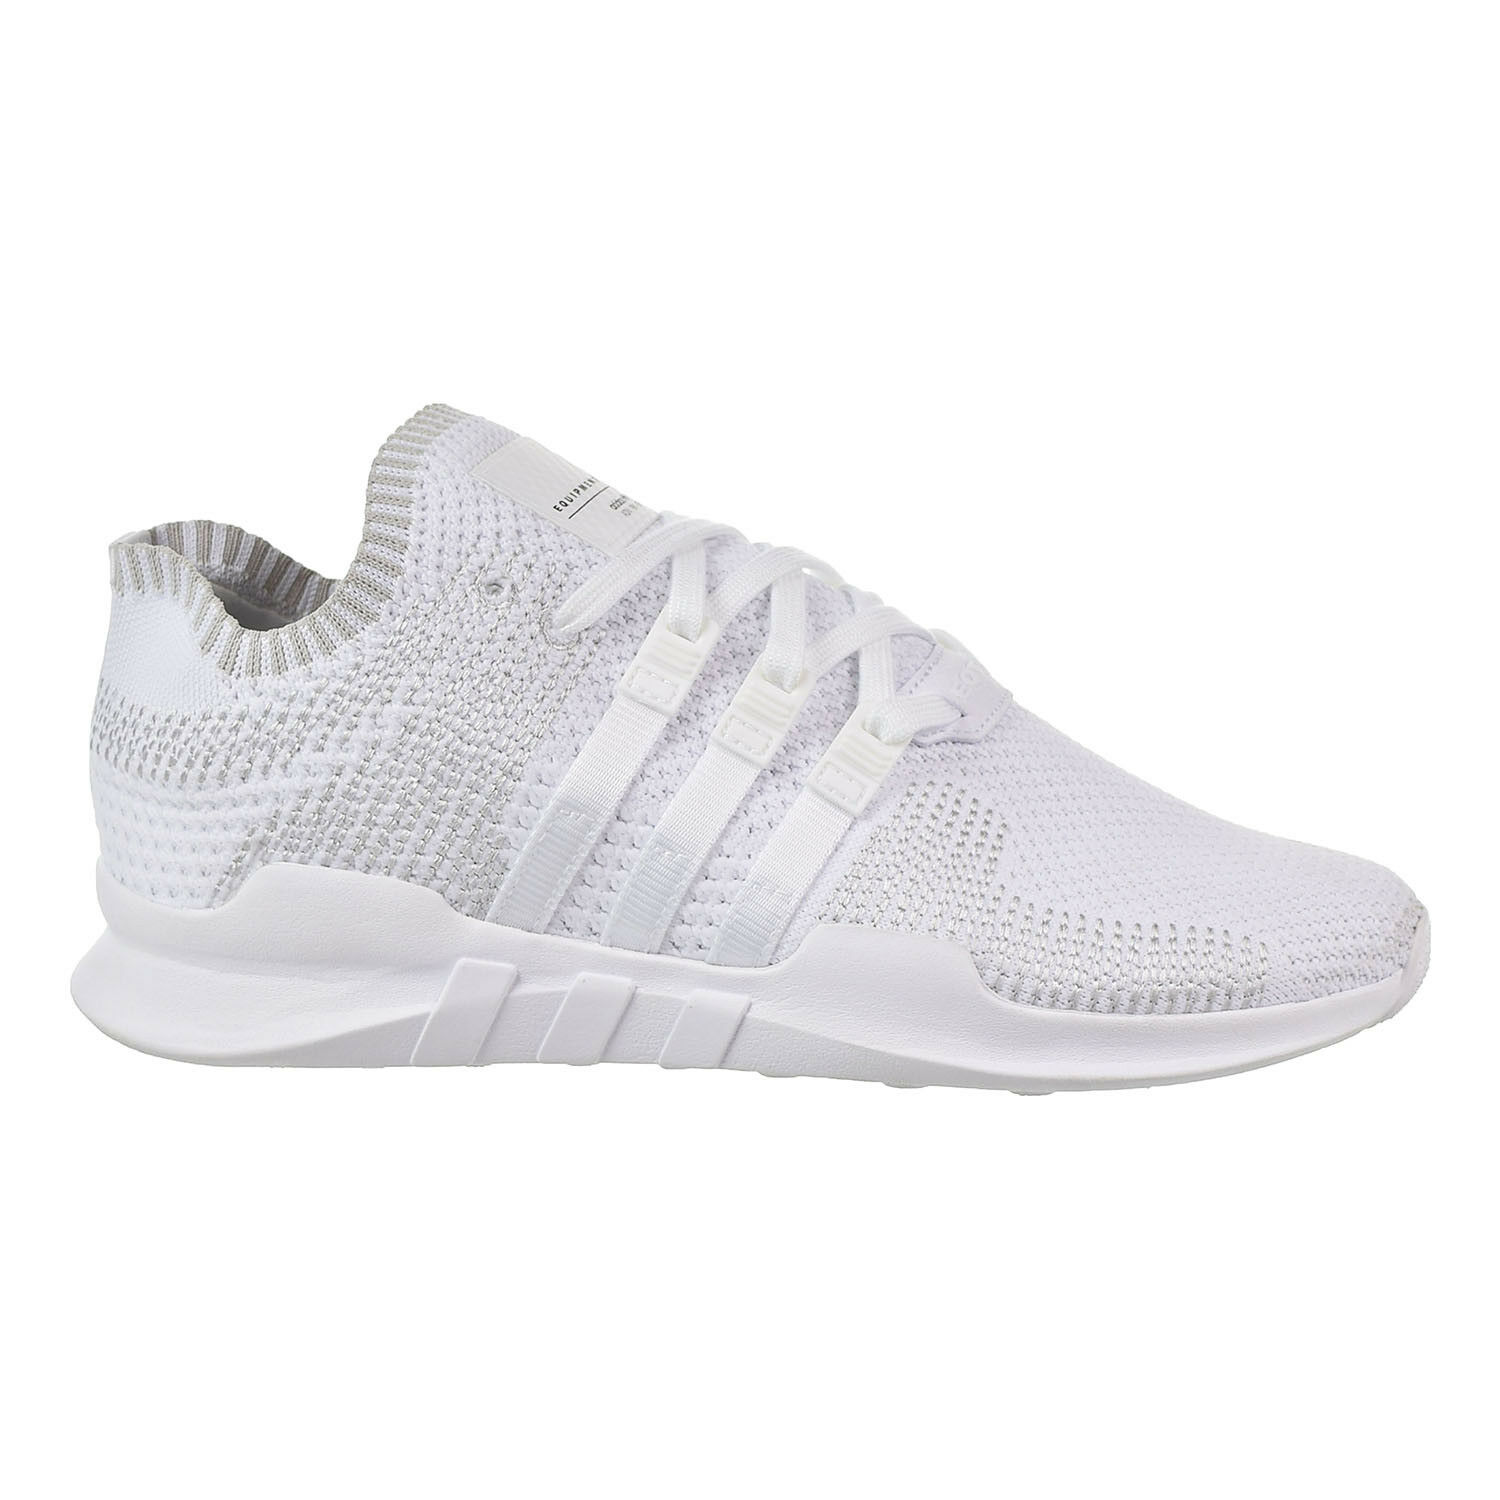 Adidas Originals EQT Support Advance Primeknit Men's Shoes White/Subgreen BY9391